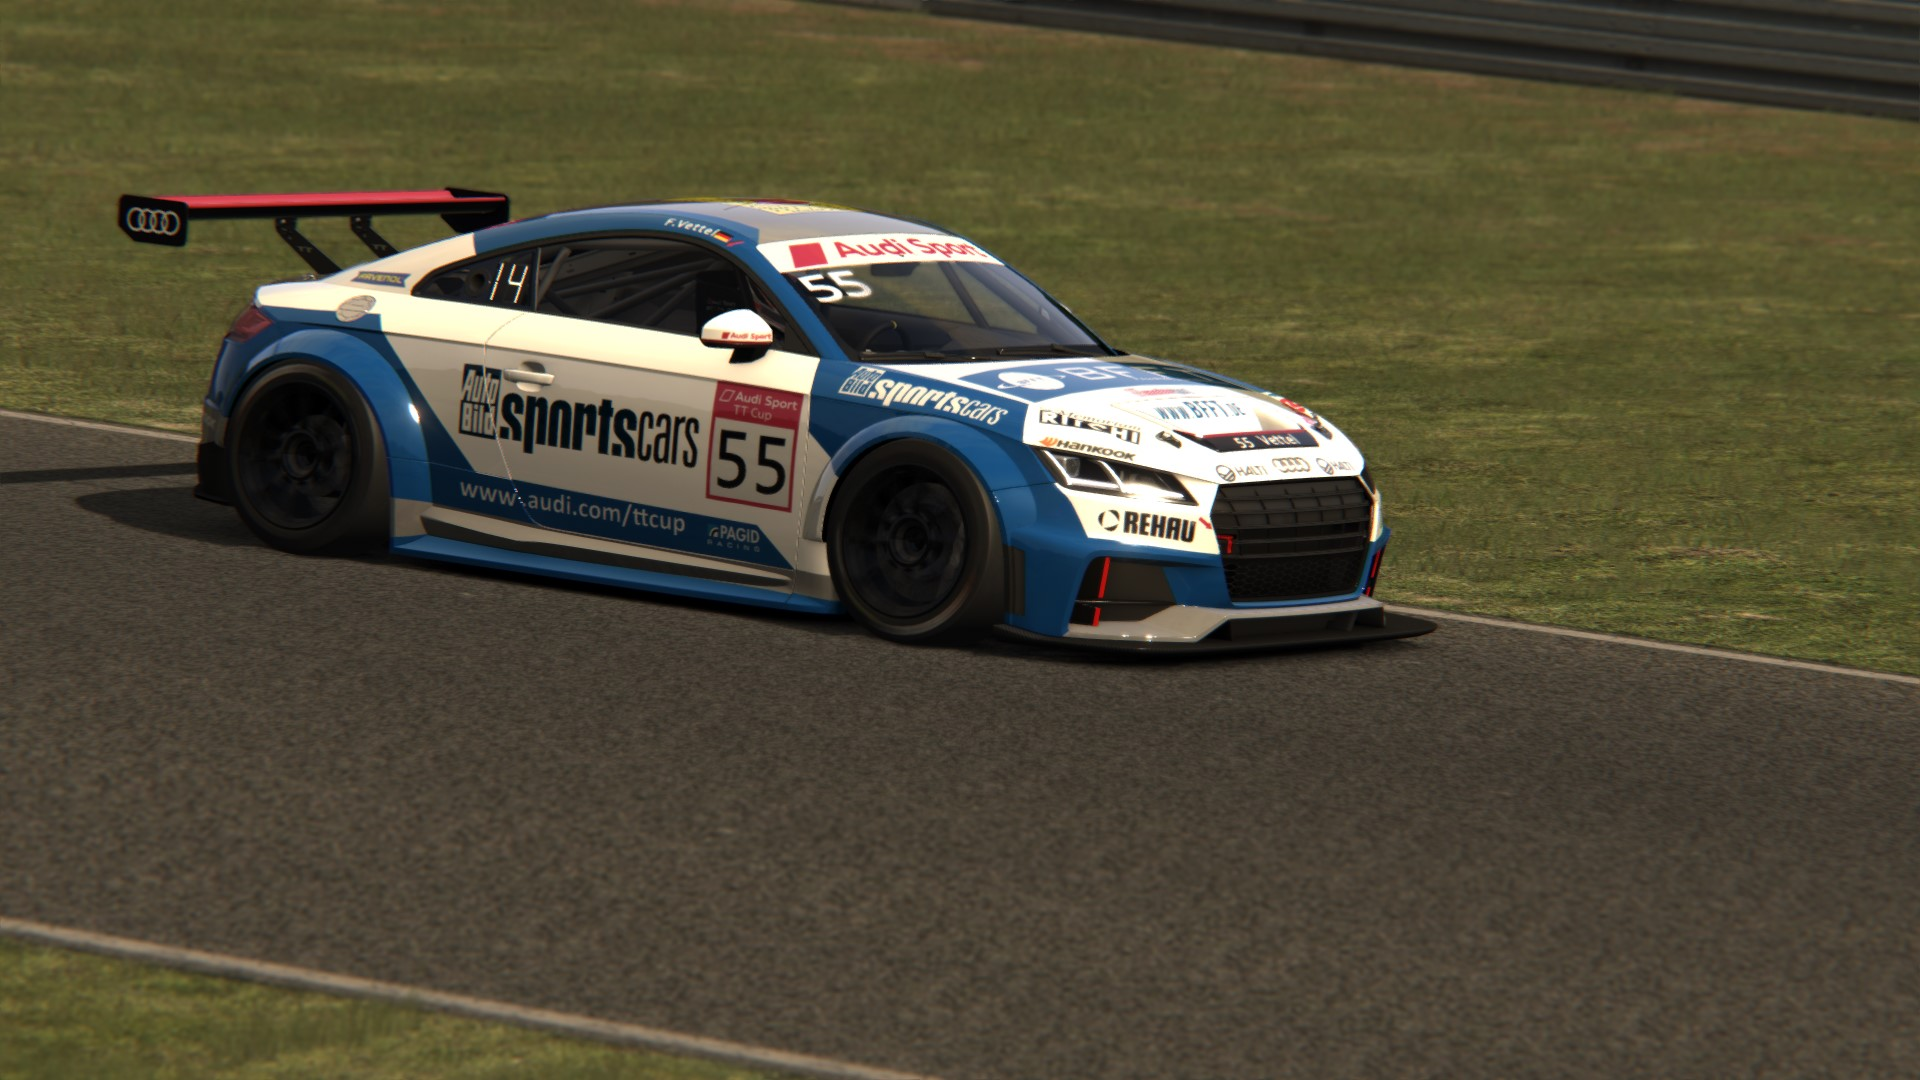 Screenshot_ks_audi_tt_cup_ks_nurburgring_9-6-117-20-39-38.jpg